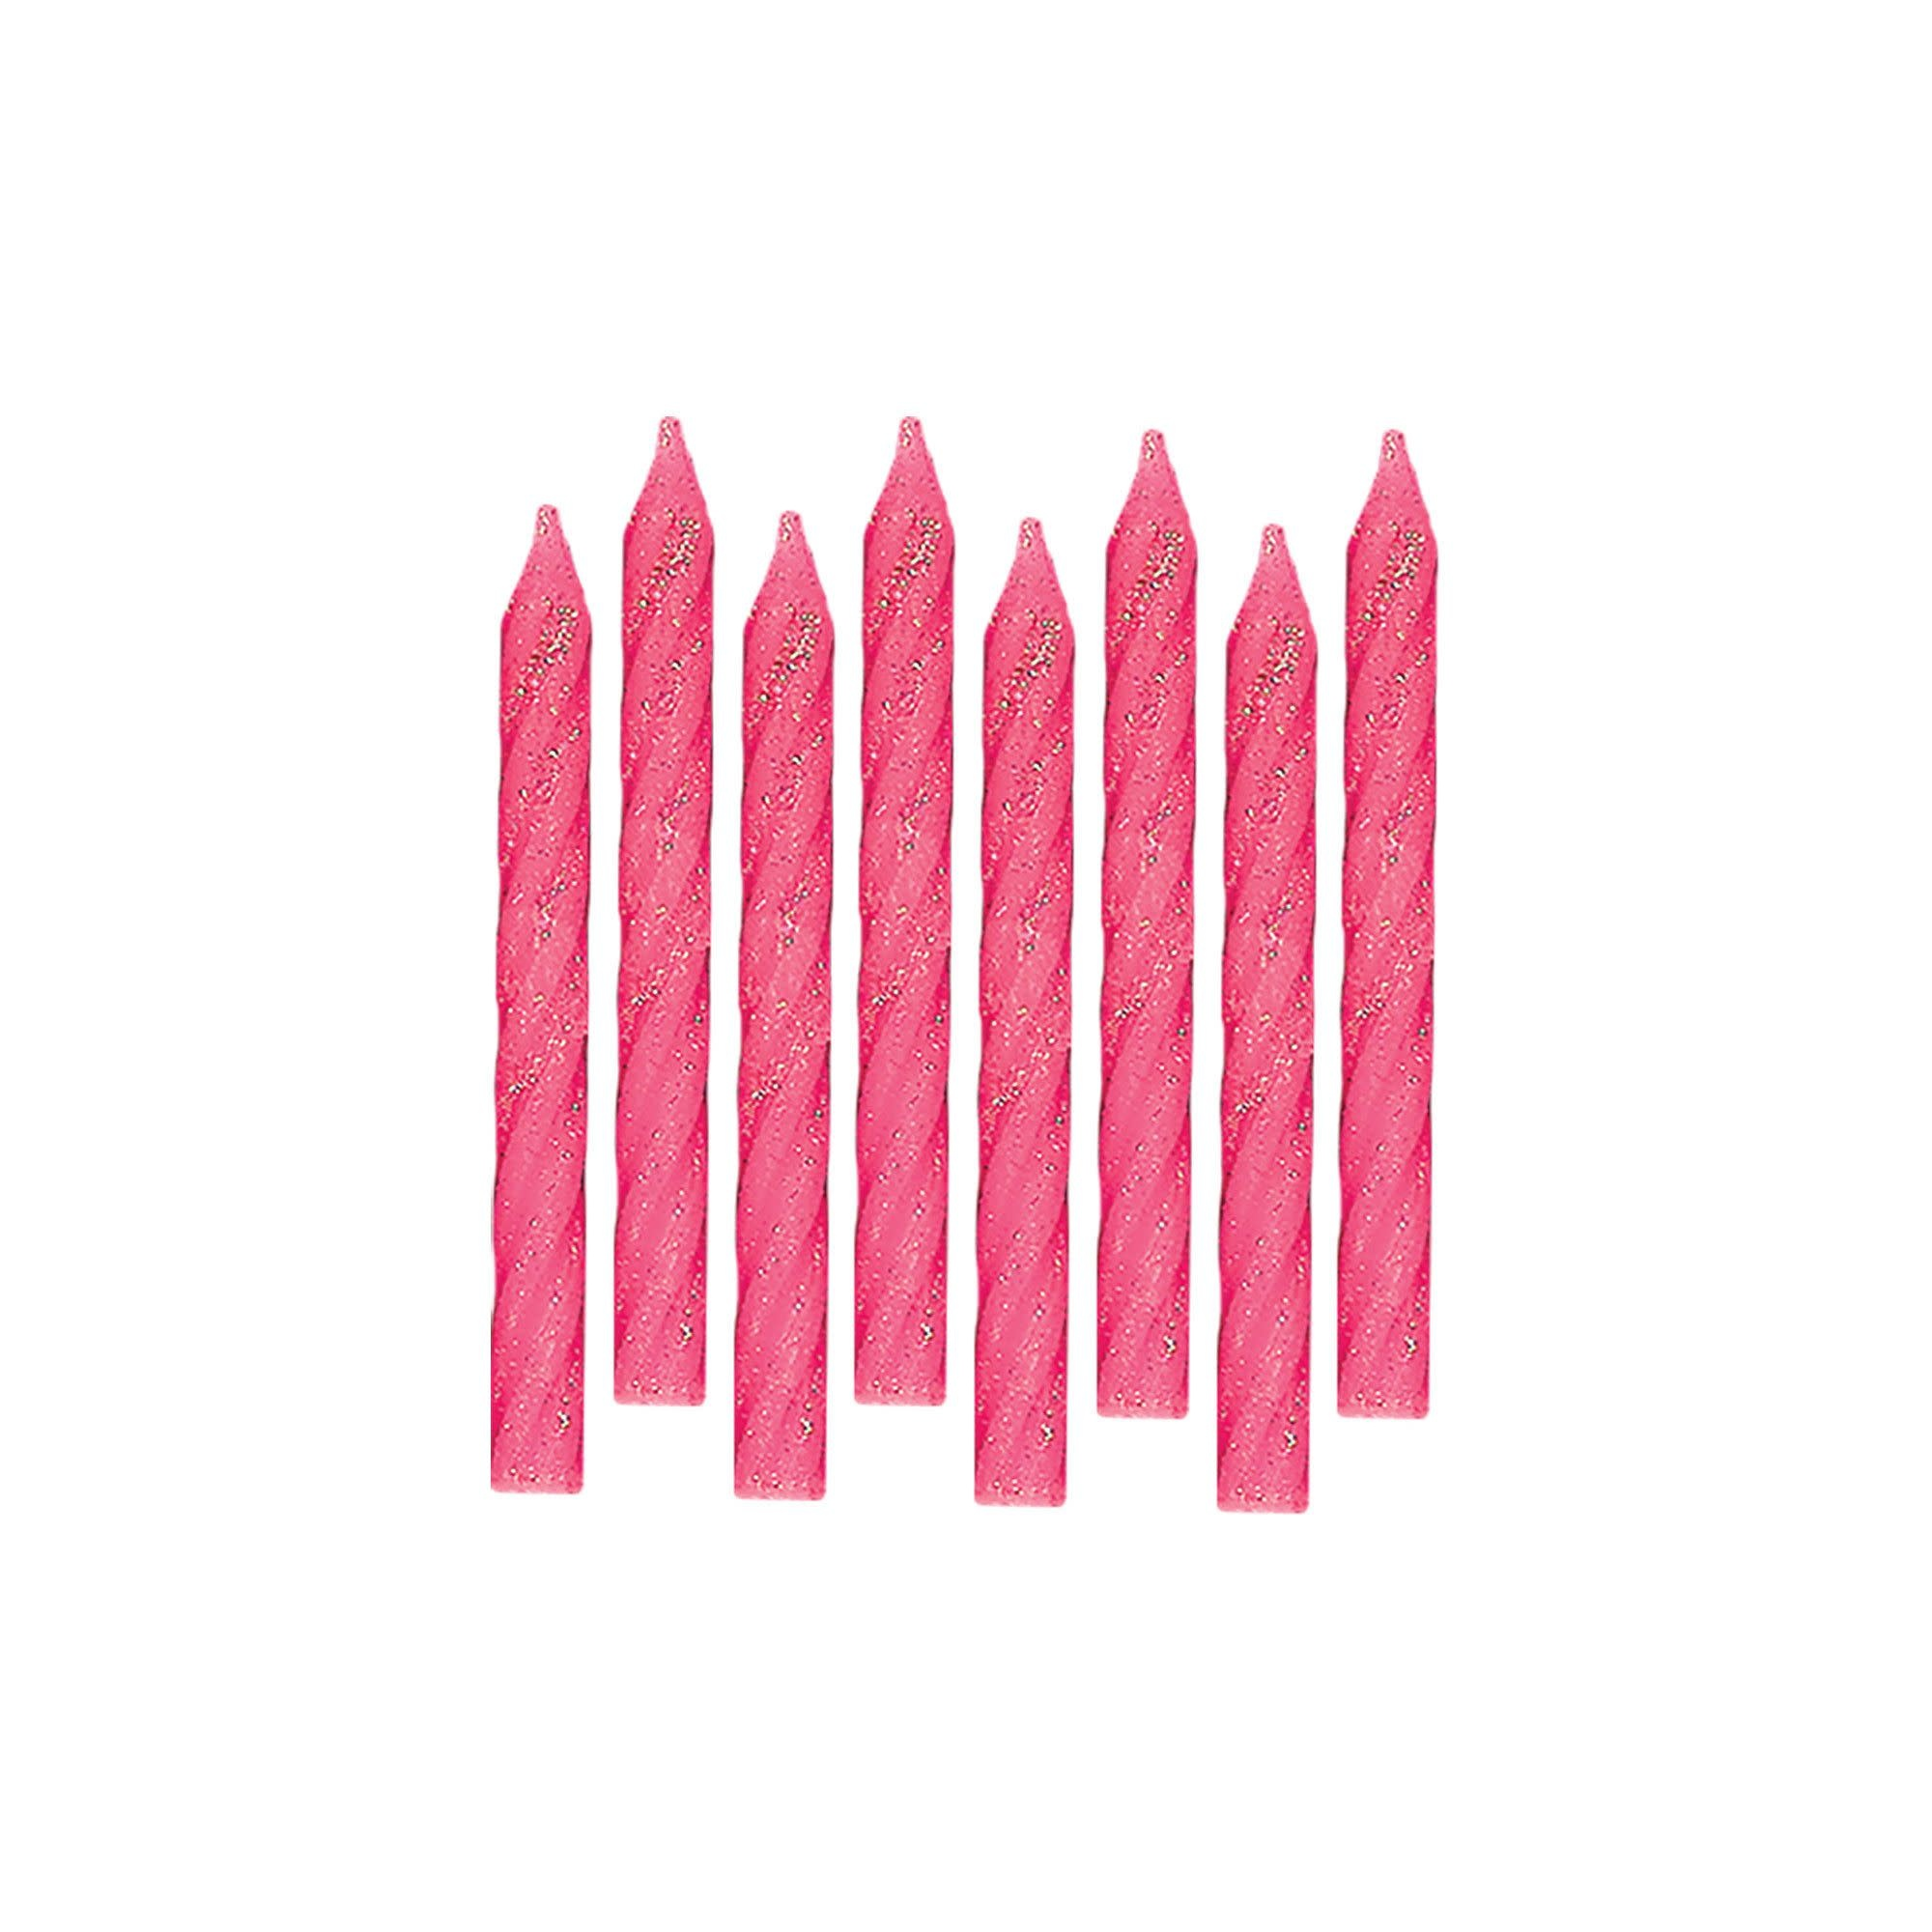 Large Glitter Spiral Candles - Pink